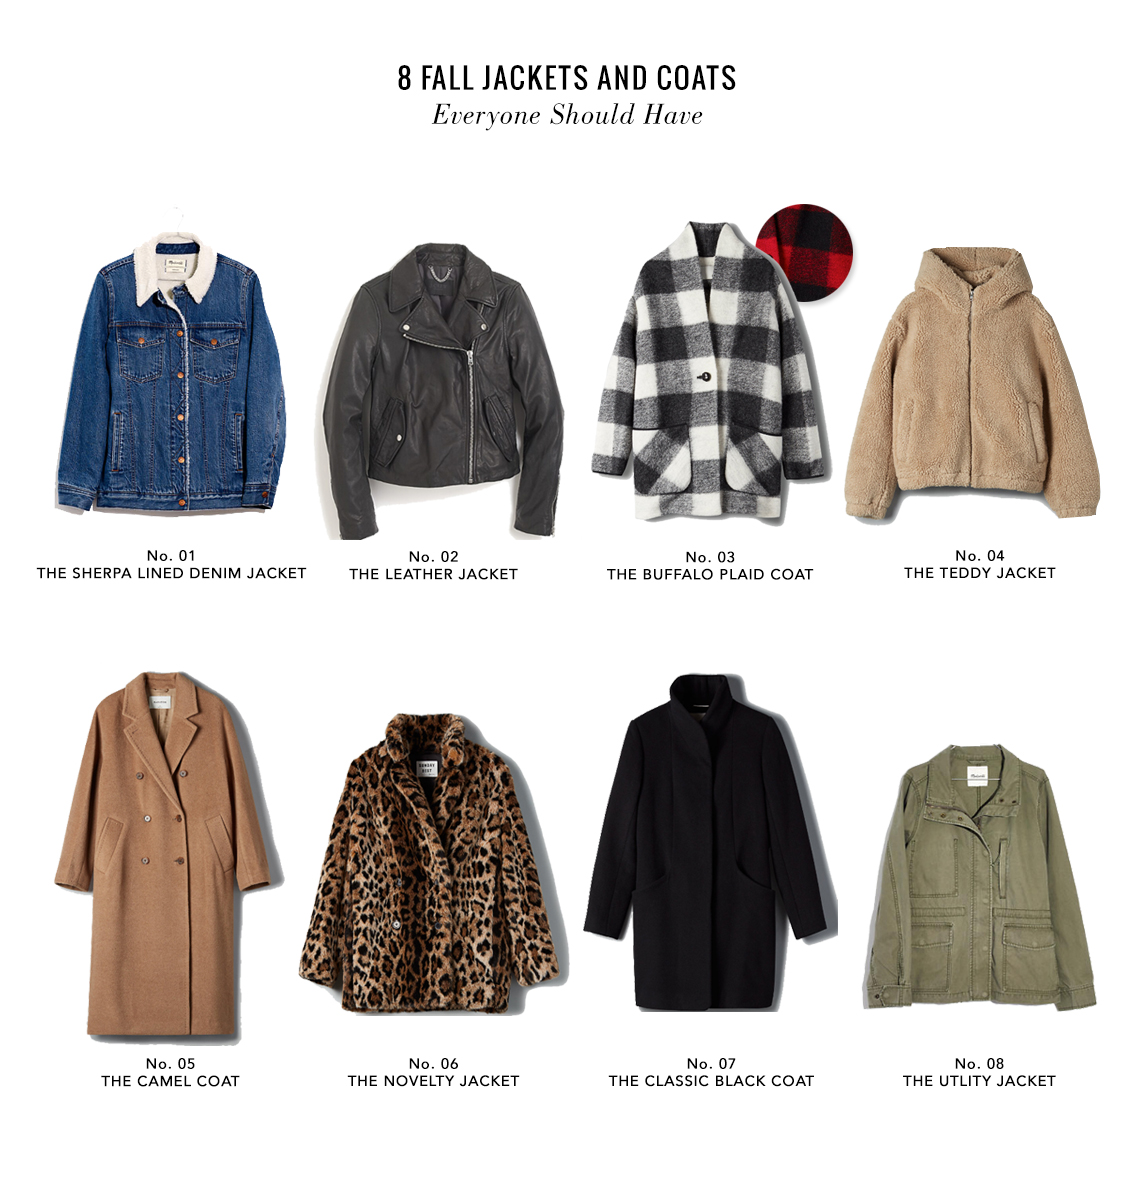 8 jackets to have for fall